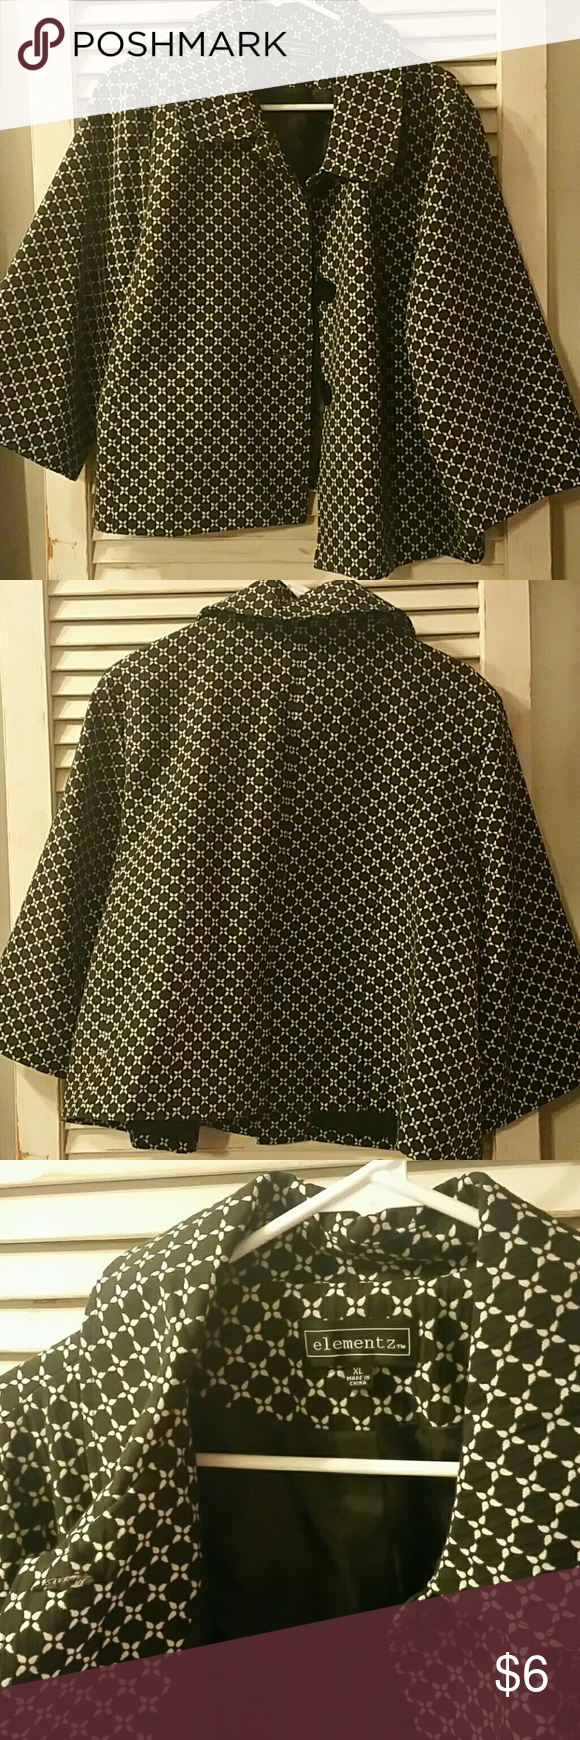 Black and White blazer Elementz XL blazer. Only worn once. Has large arms that give a casual look to this blazer. Hits around waist level. elementz Jackets & Coats Blazers